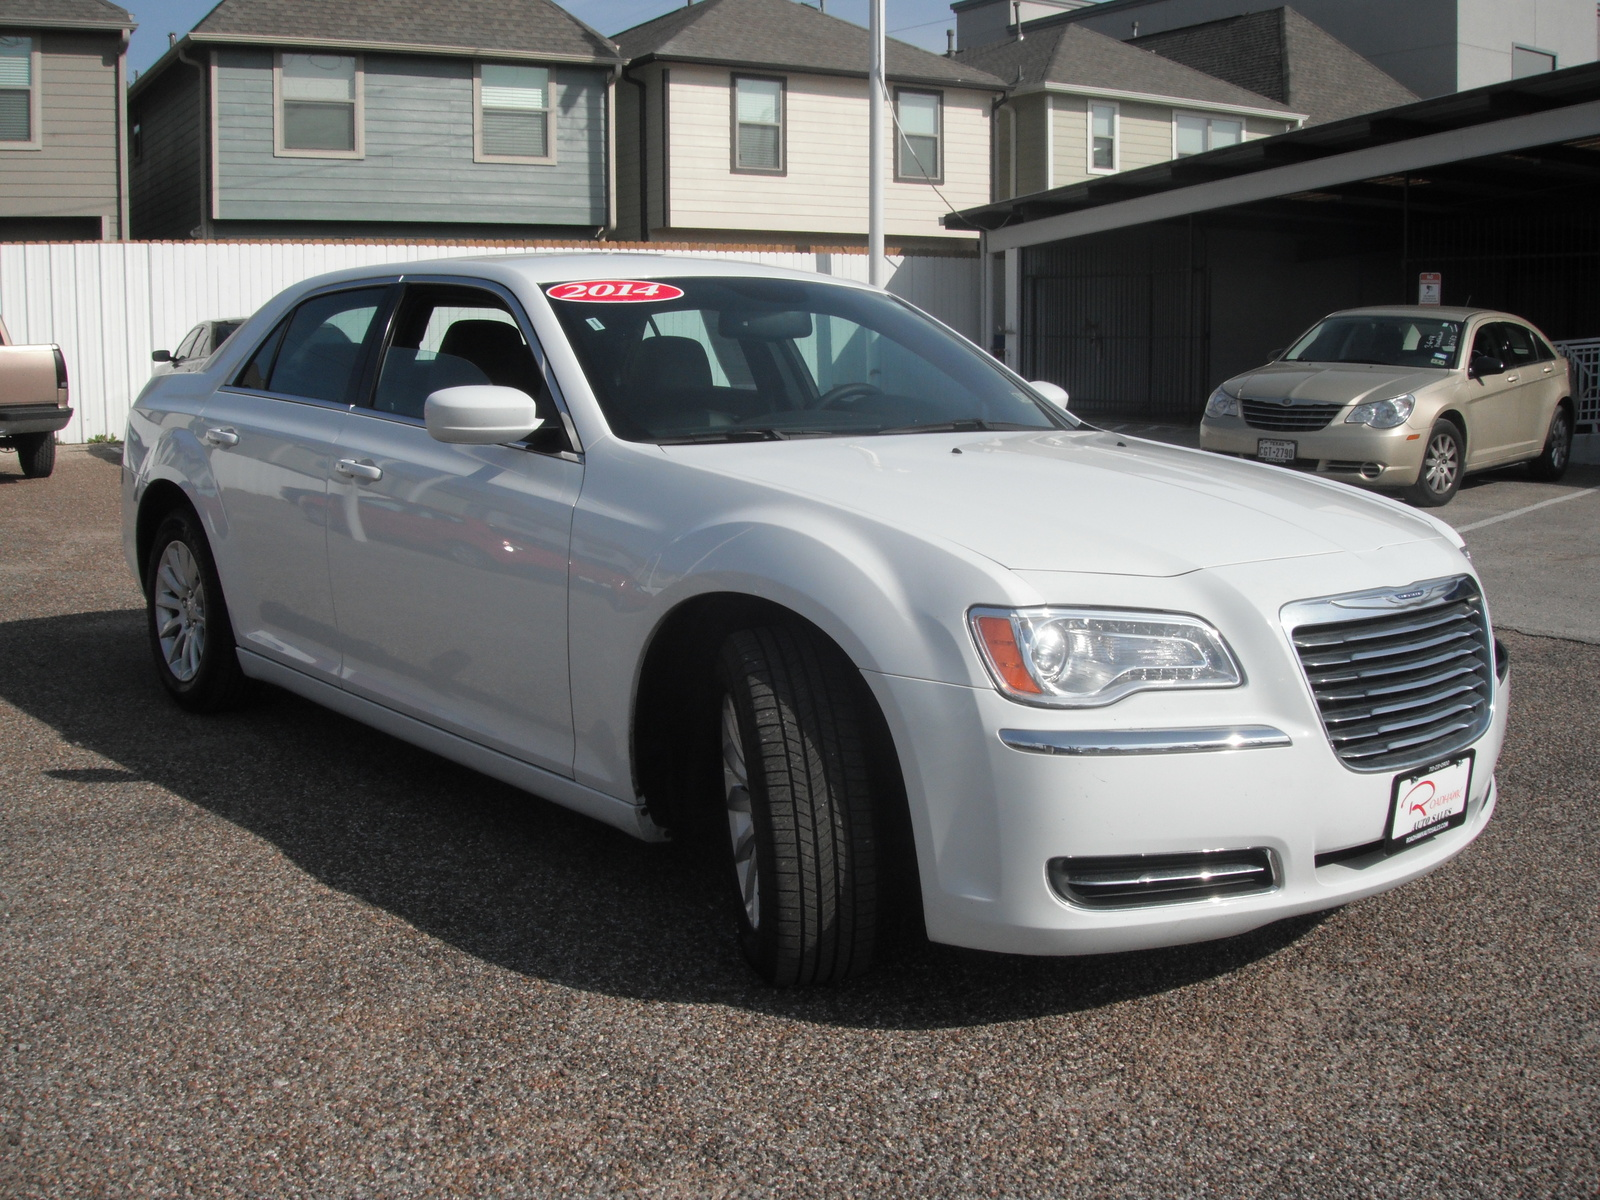 2014 Chrysler 300 Pictures Cargurus